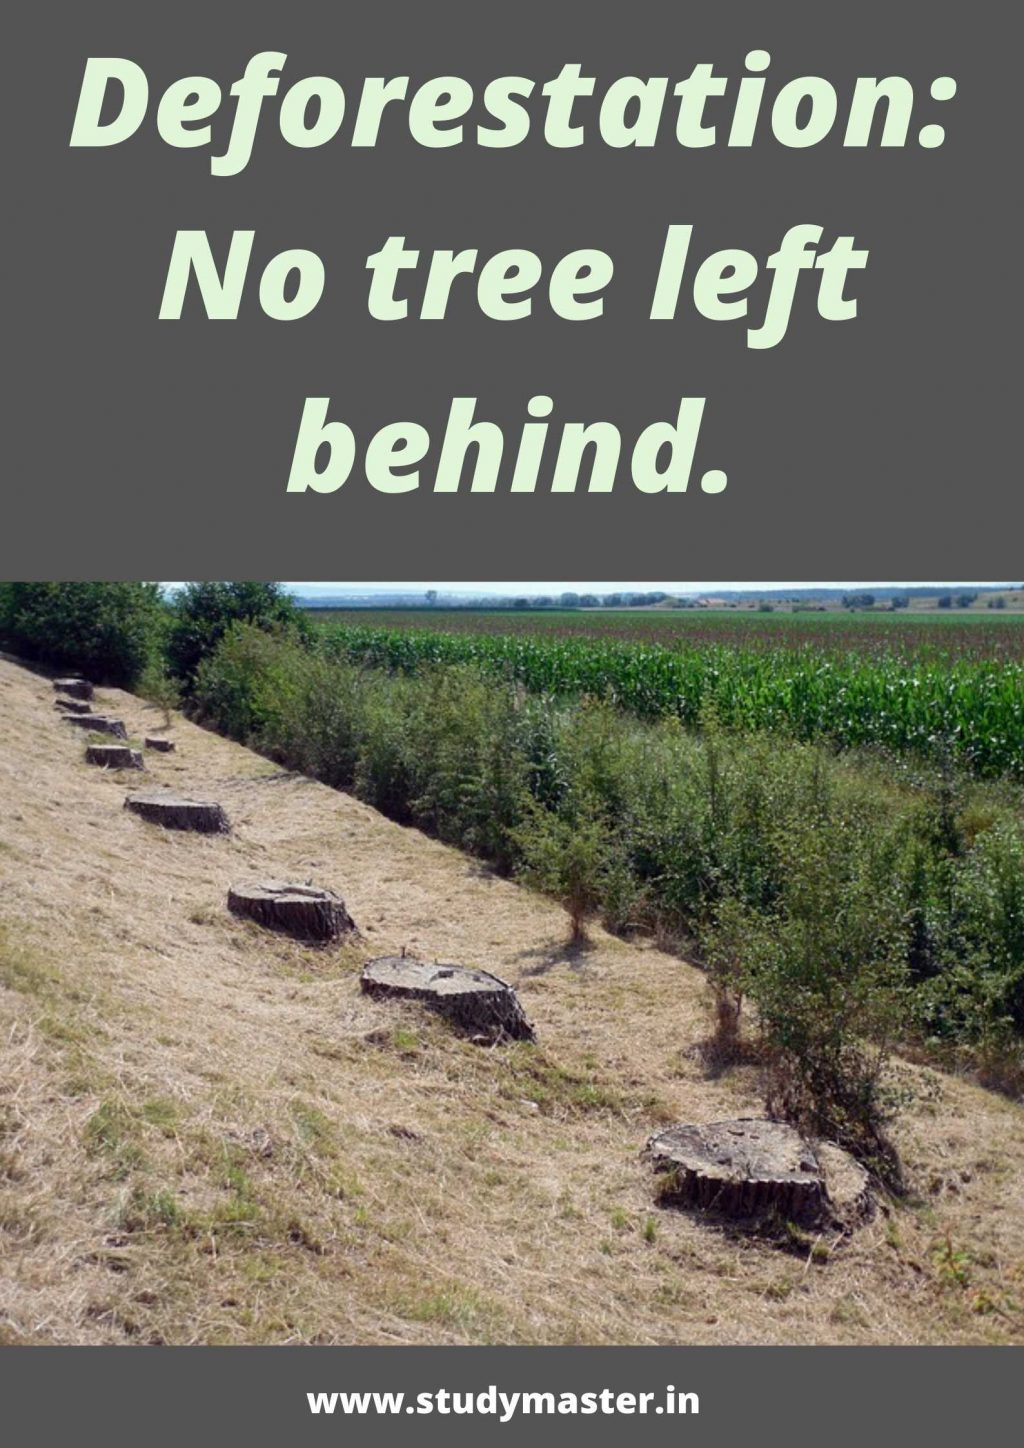 poster to spread awareness on deforestation